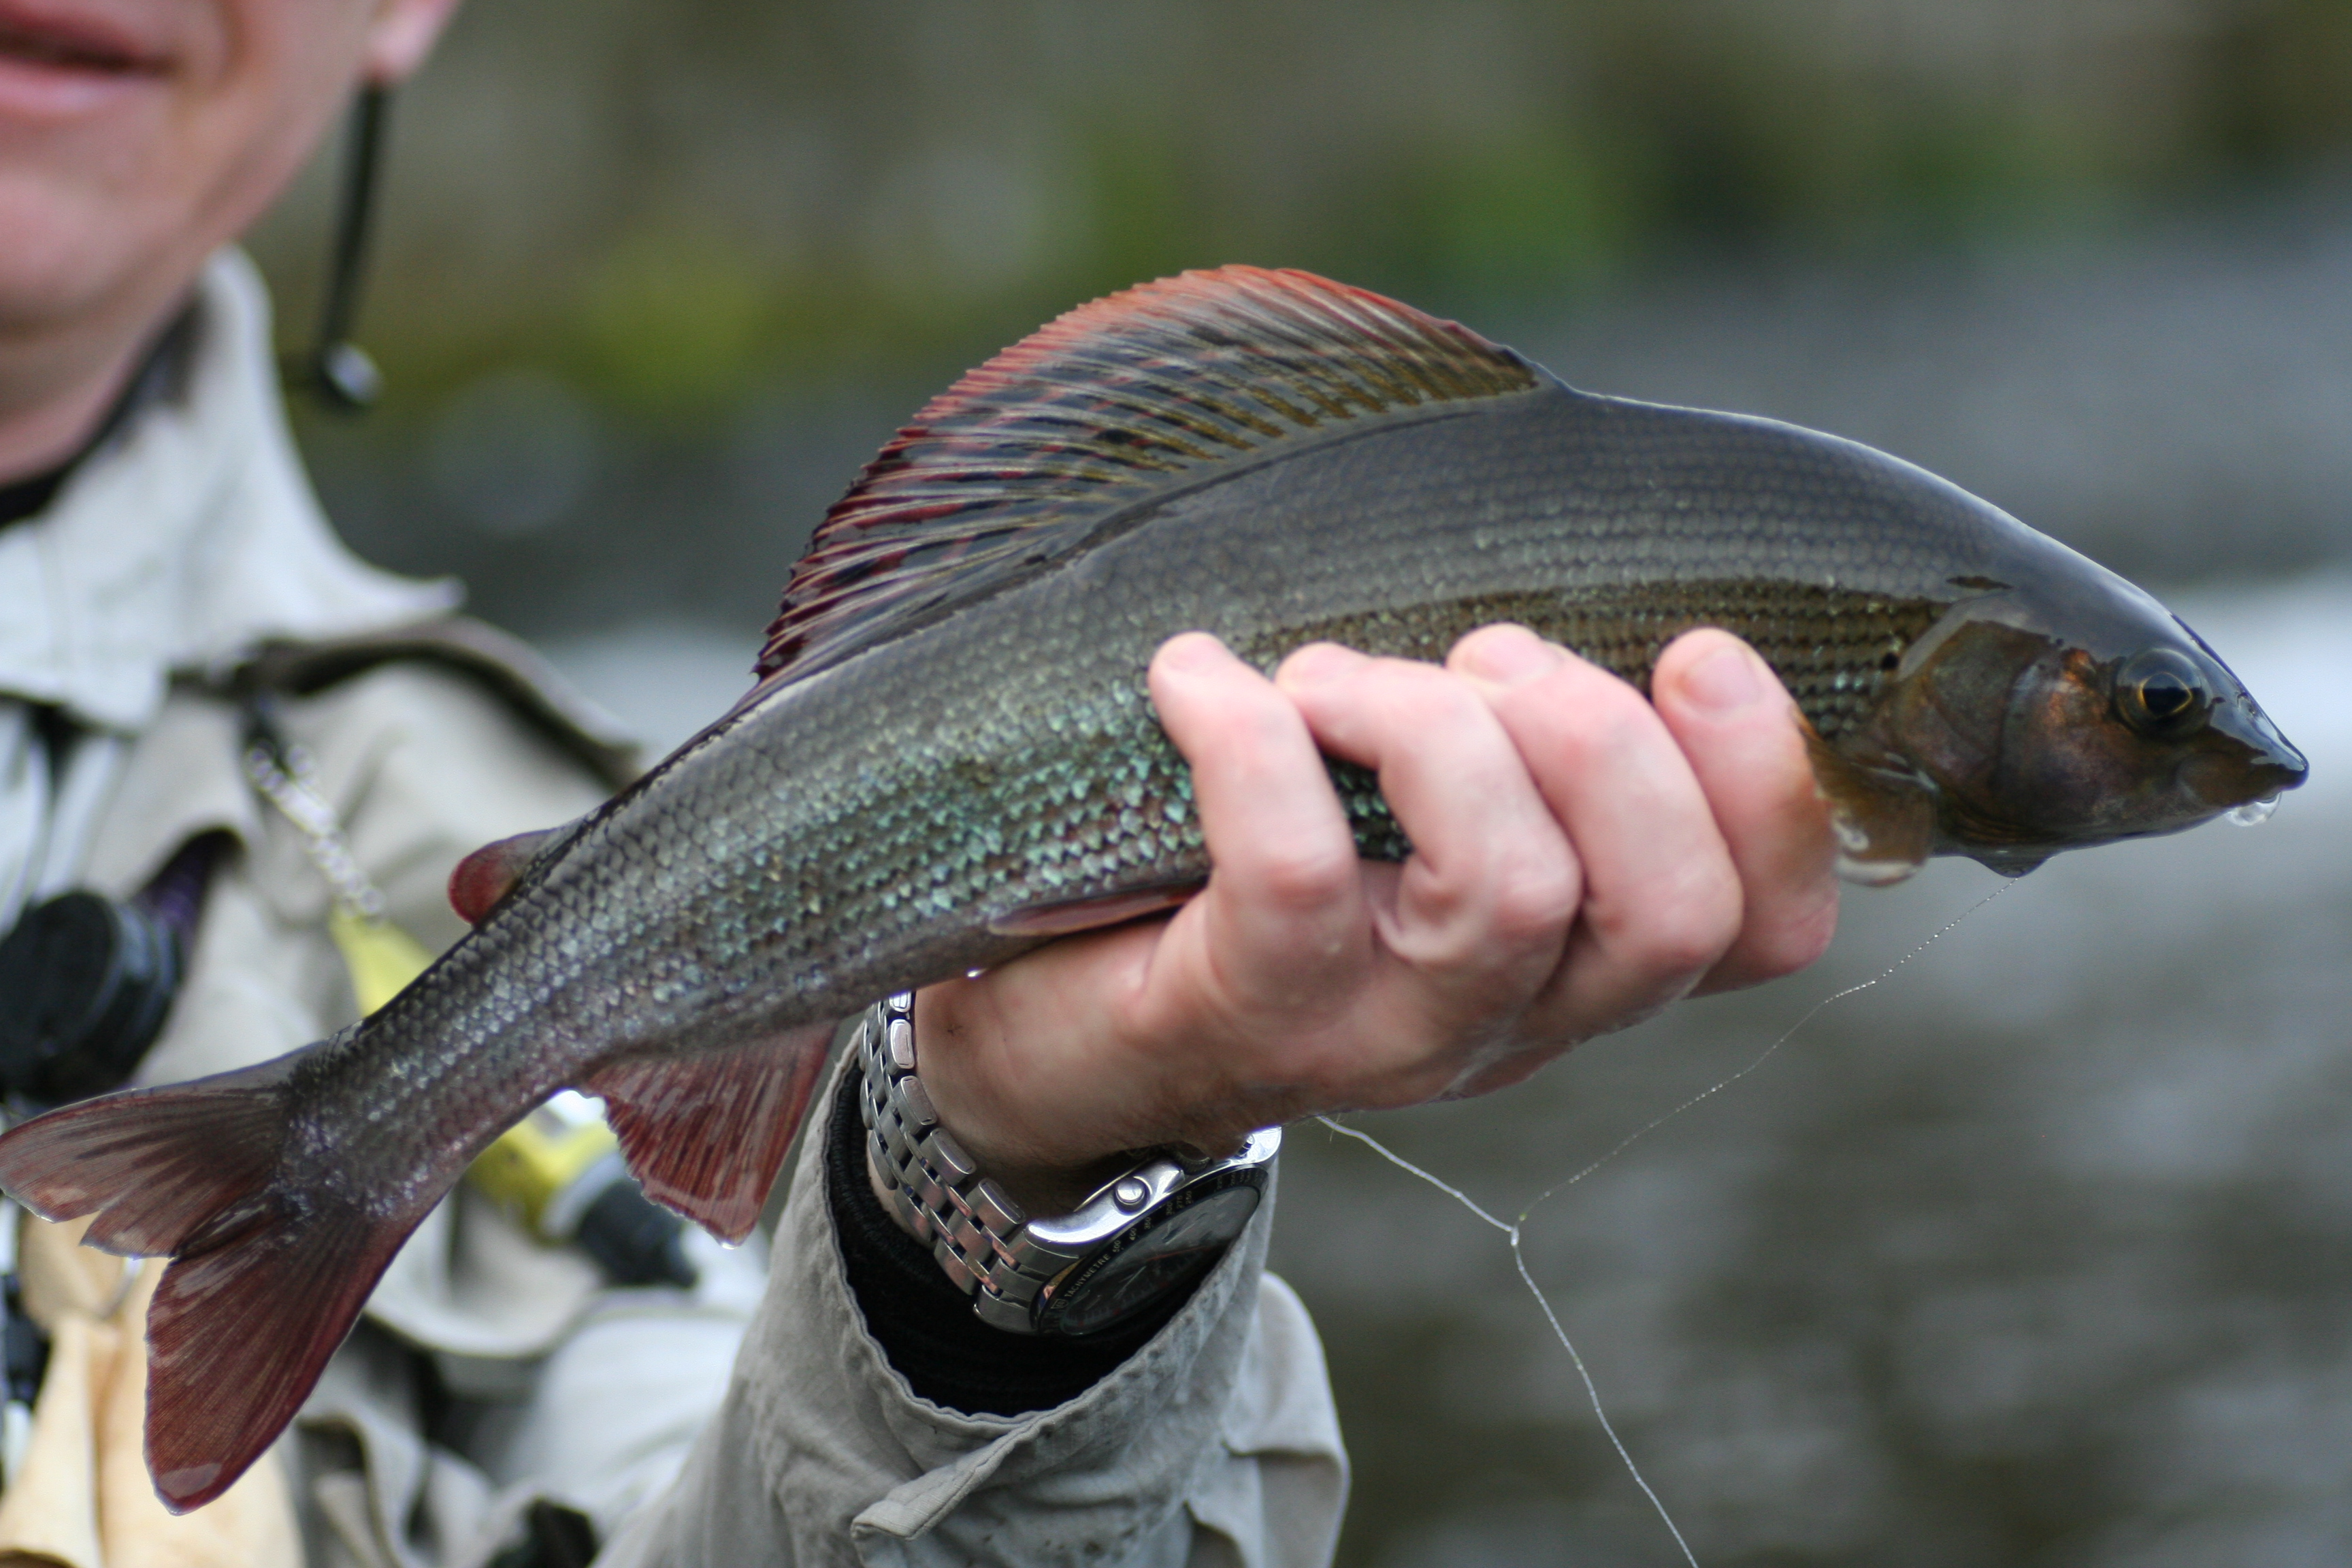 dave downie fishing, Fly Fishing Bait